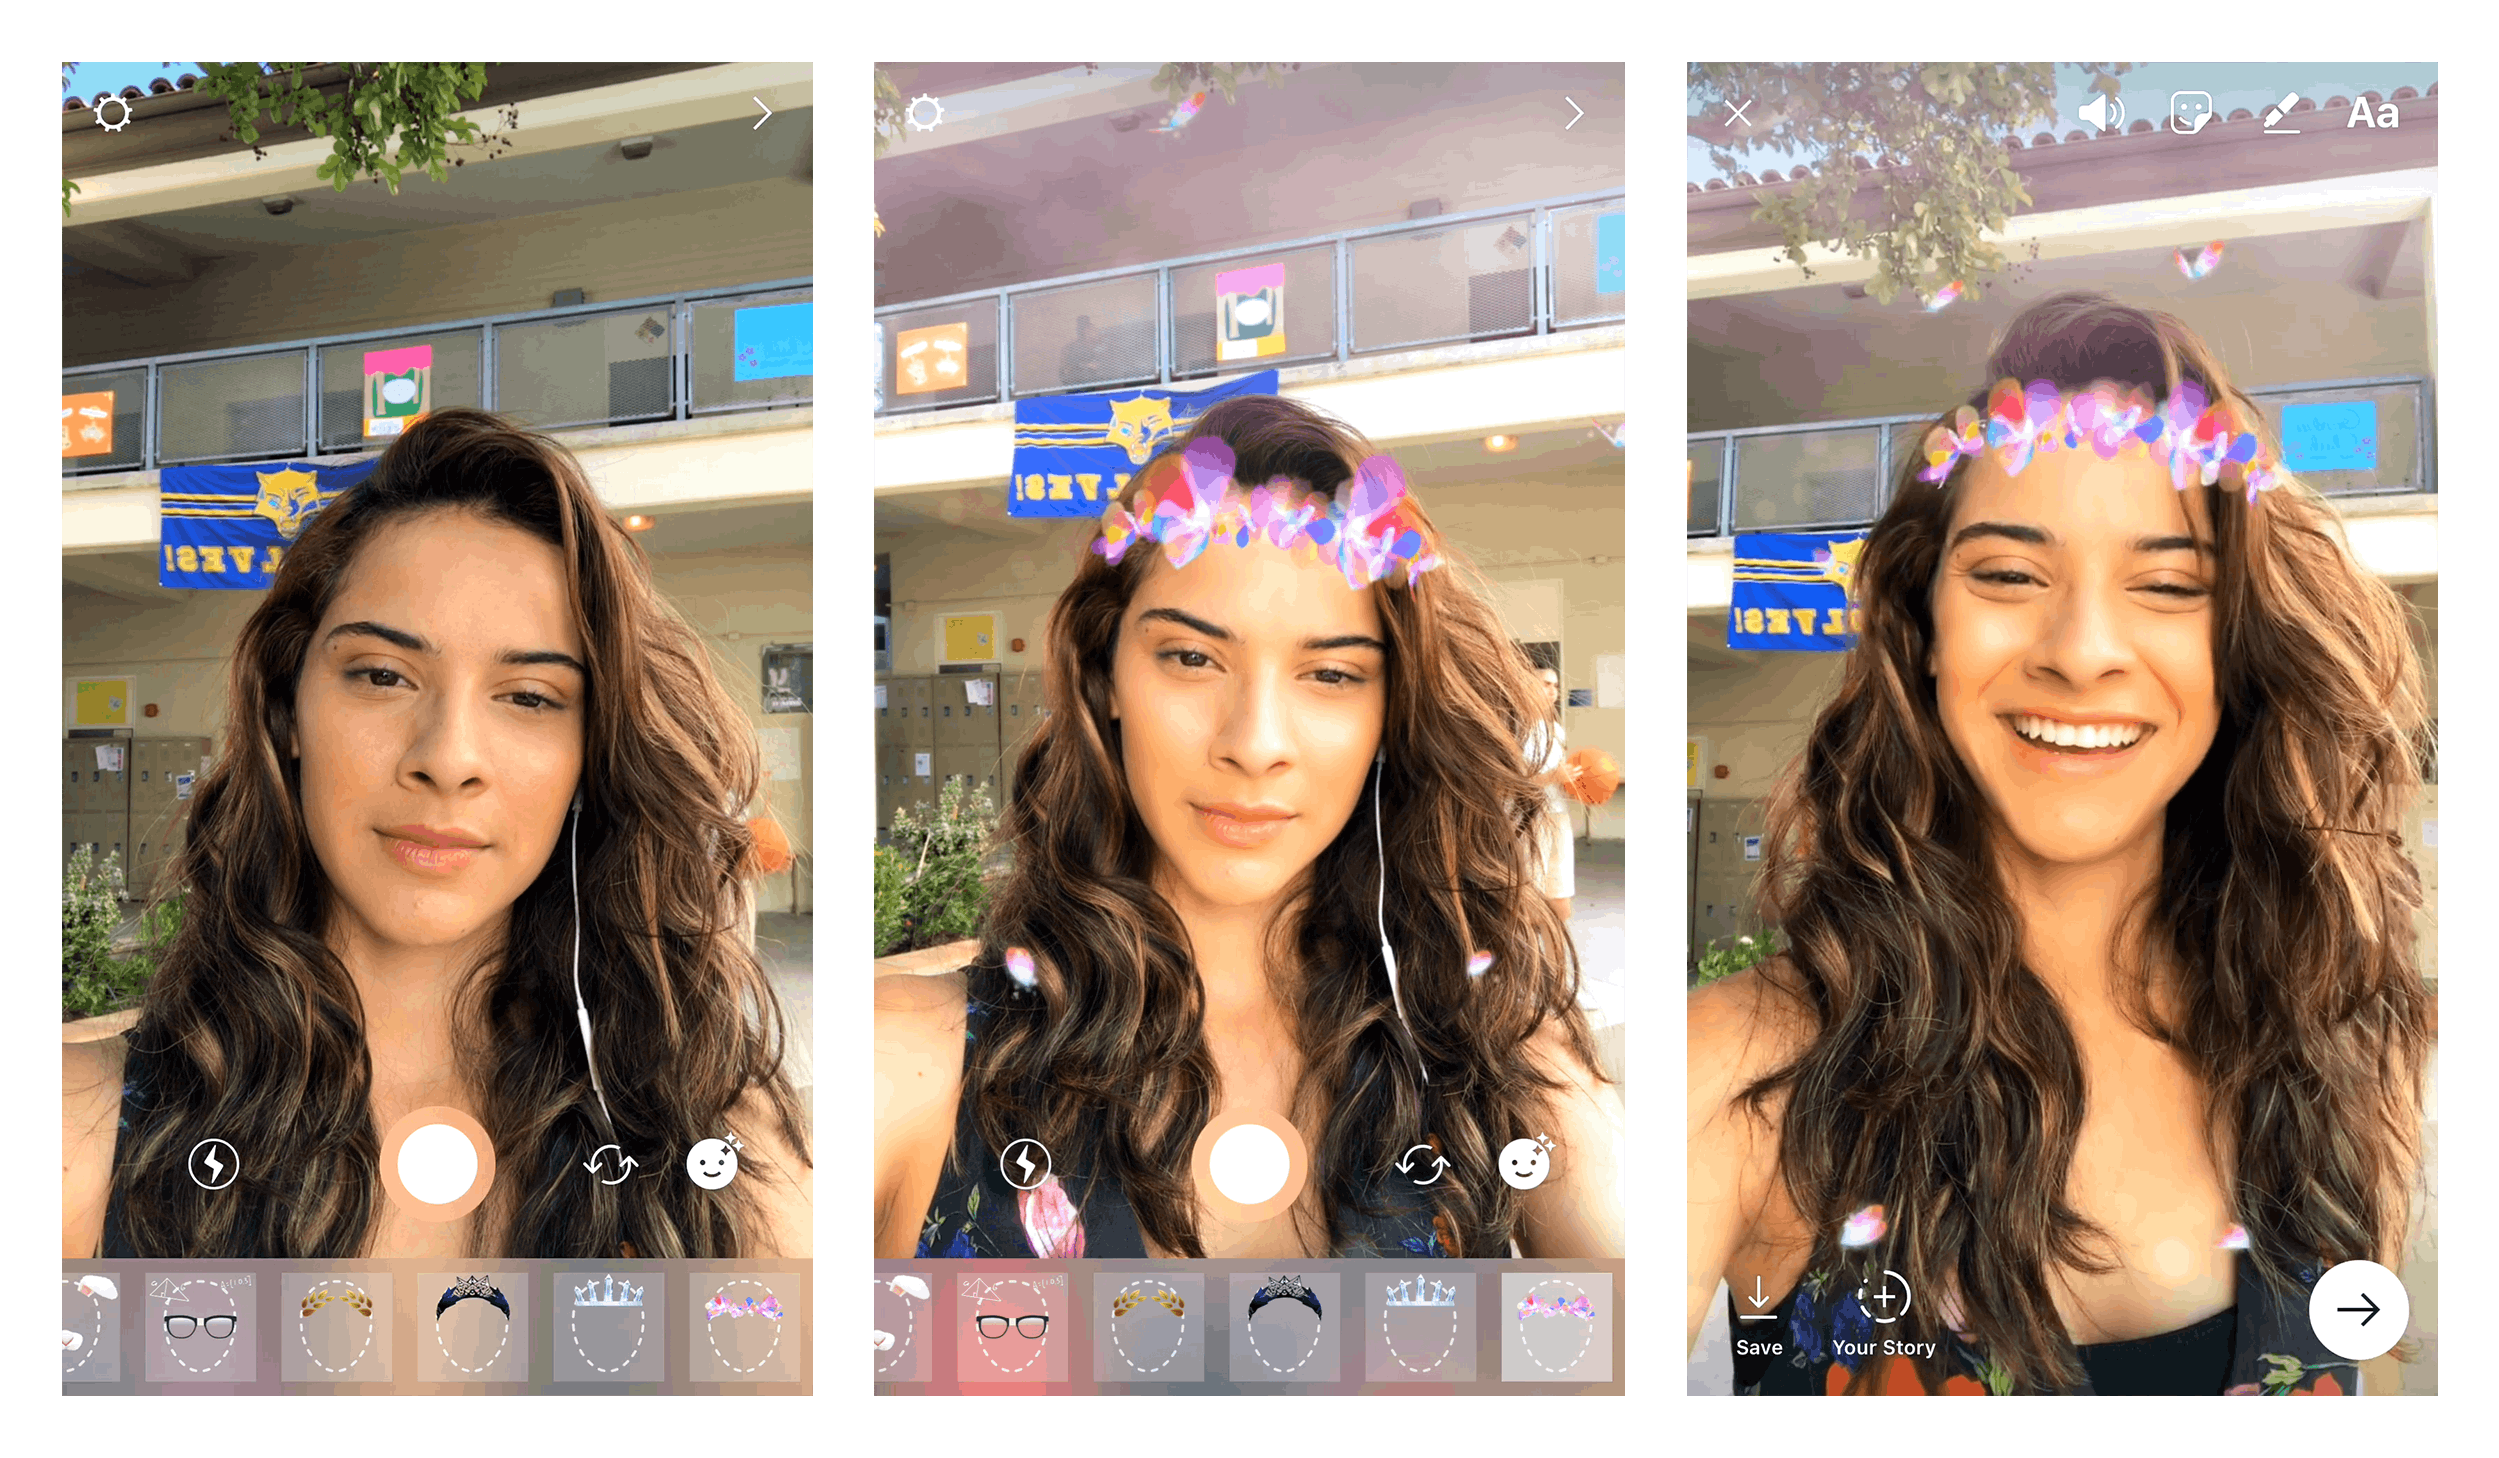 Instagram adds face filters, more creative tools